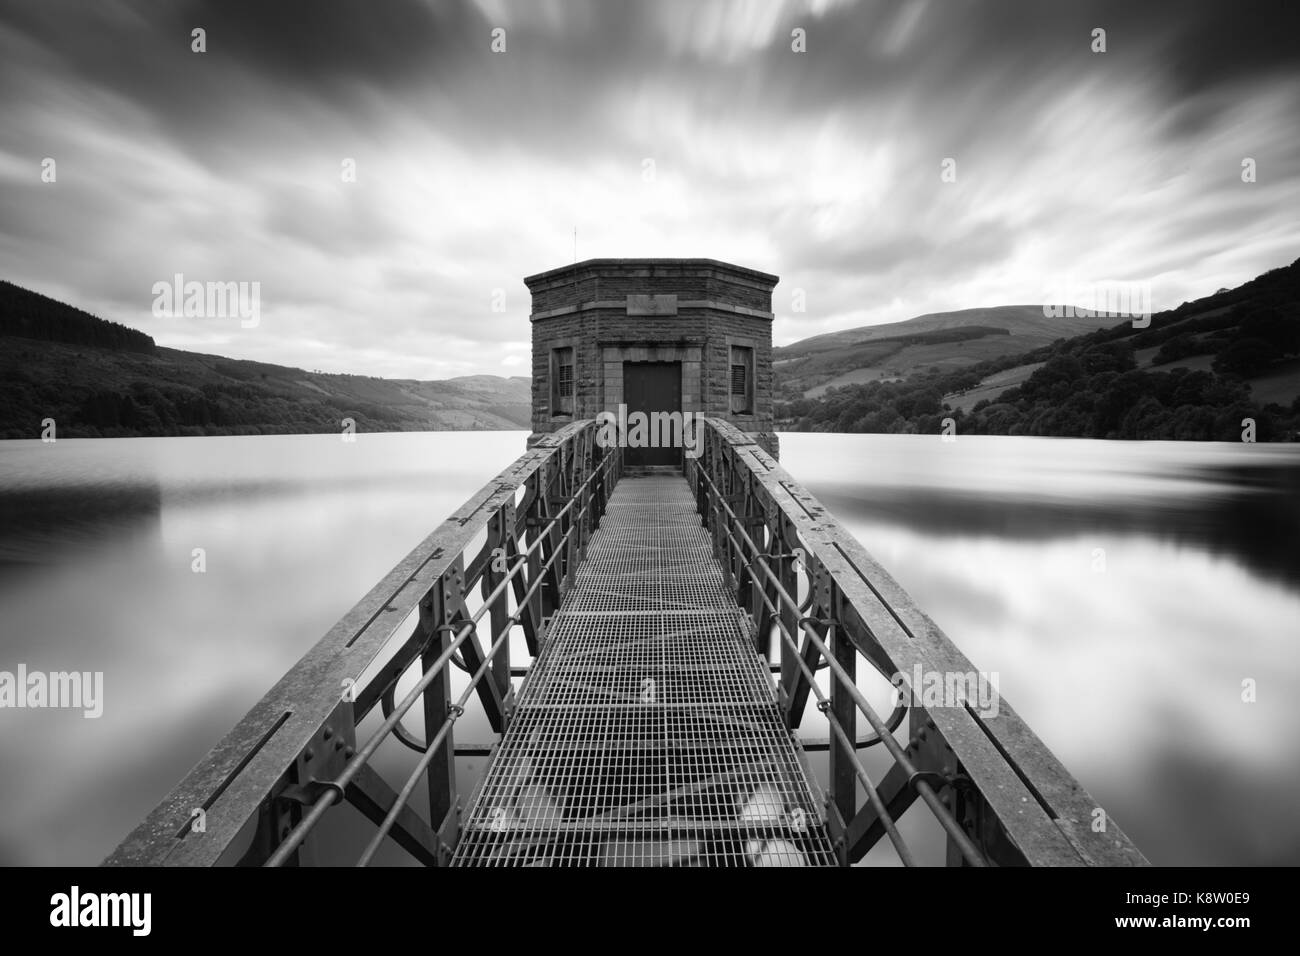 Talybont Reservoir Pump House, in the Brecon Beacons National Park, Wales, UK - Stock Image